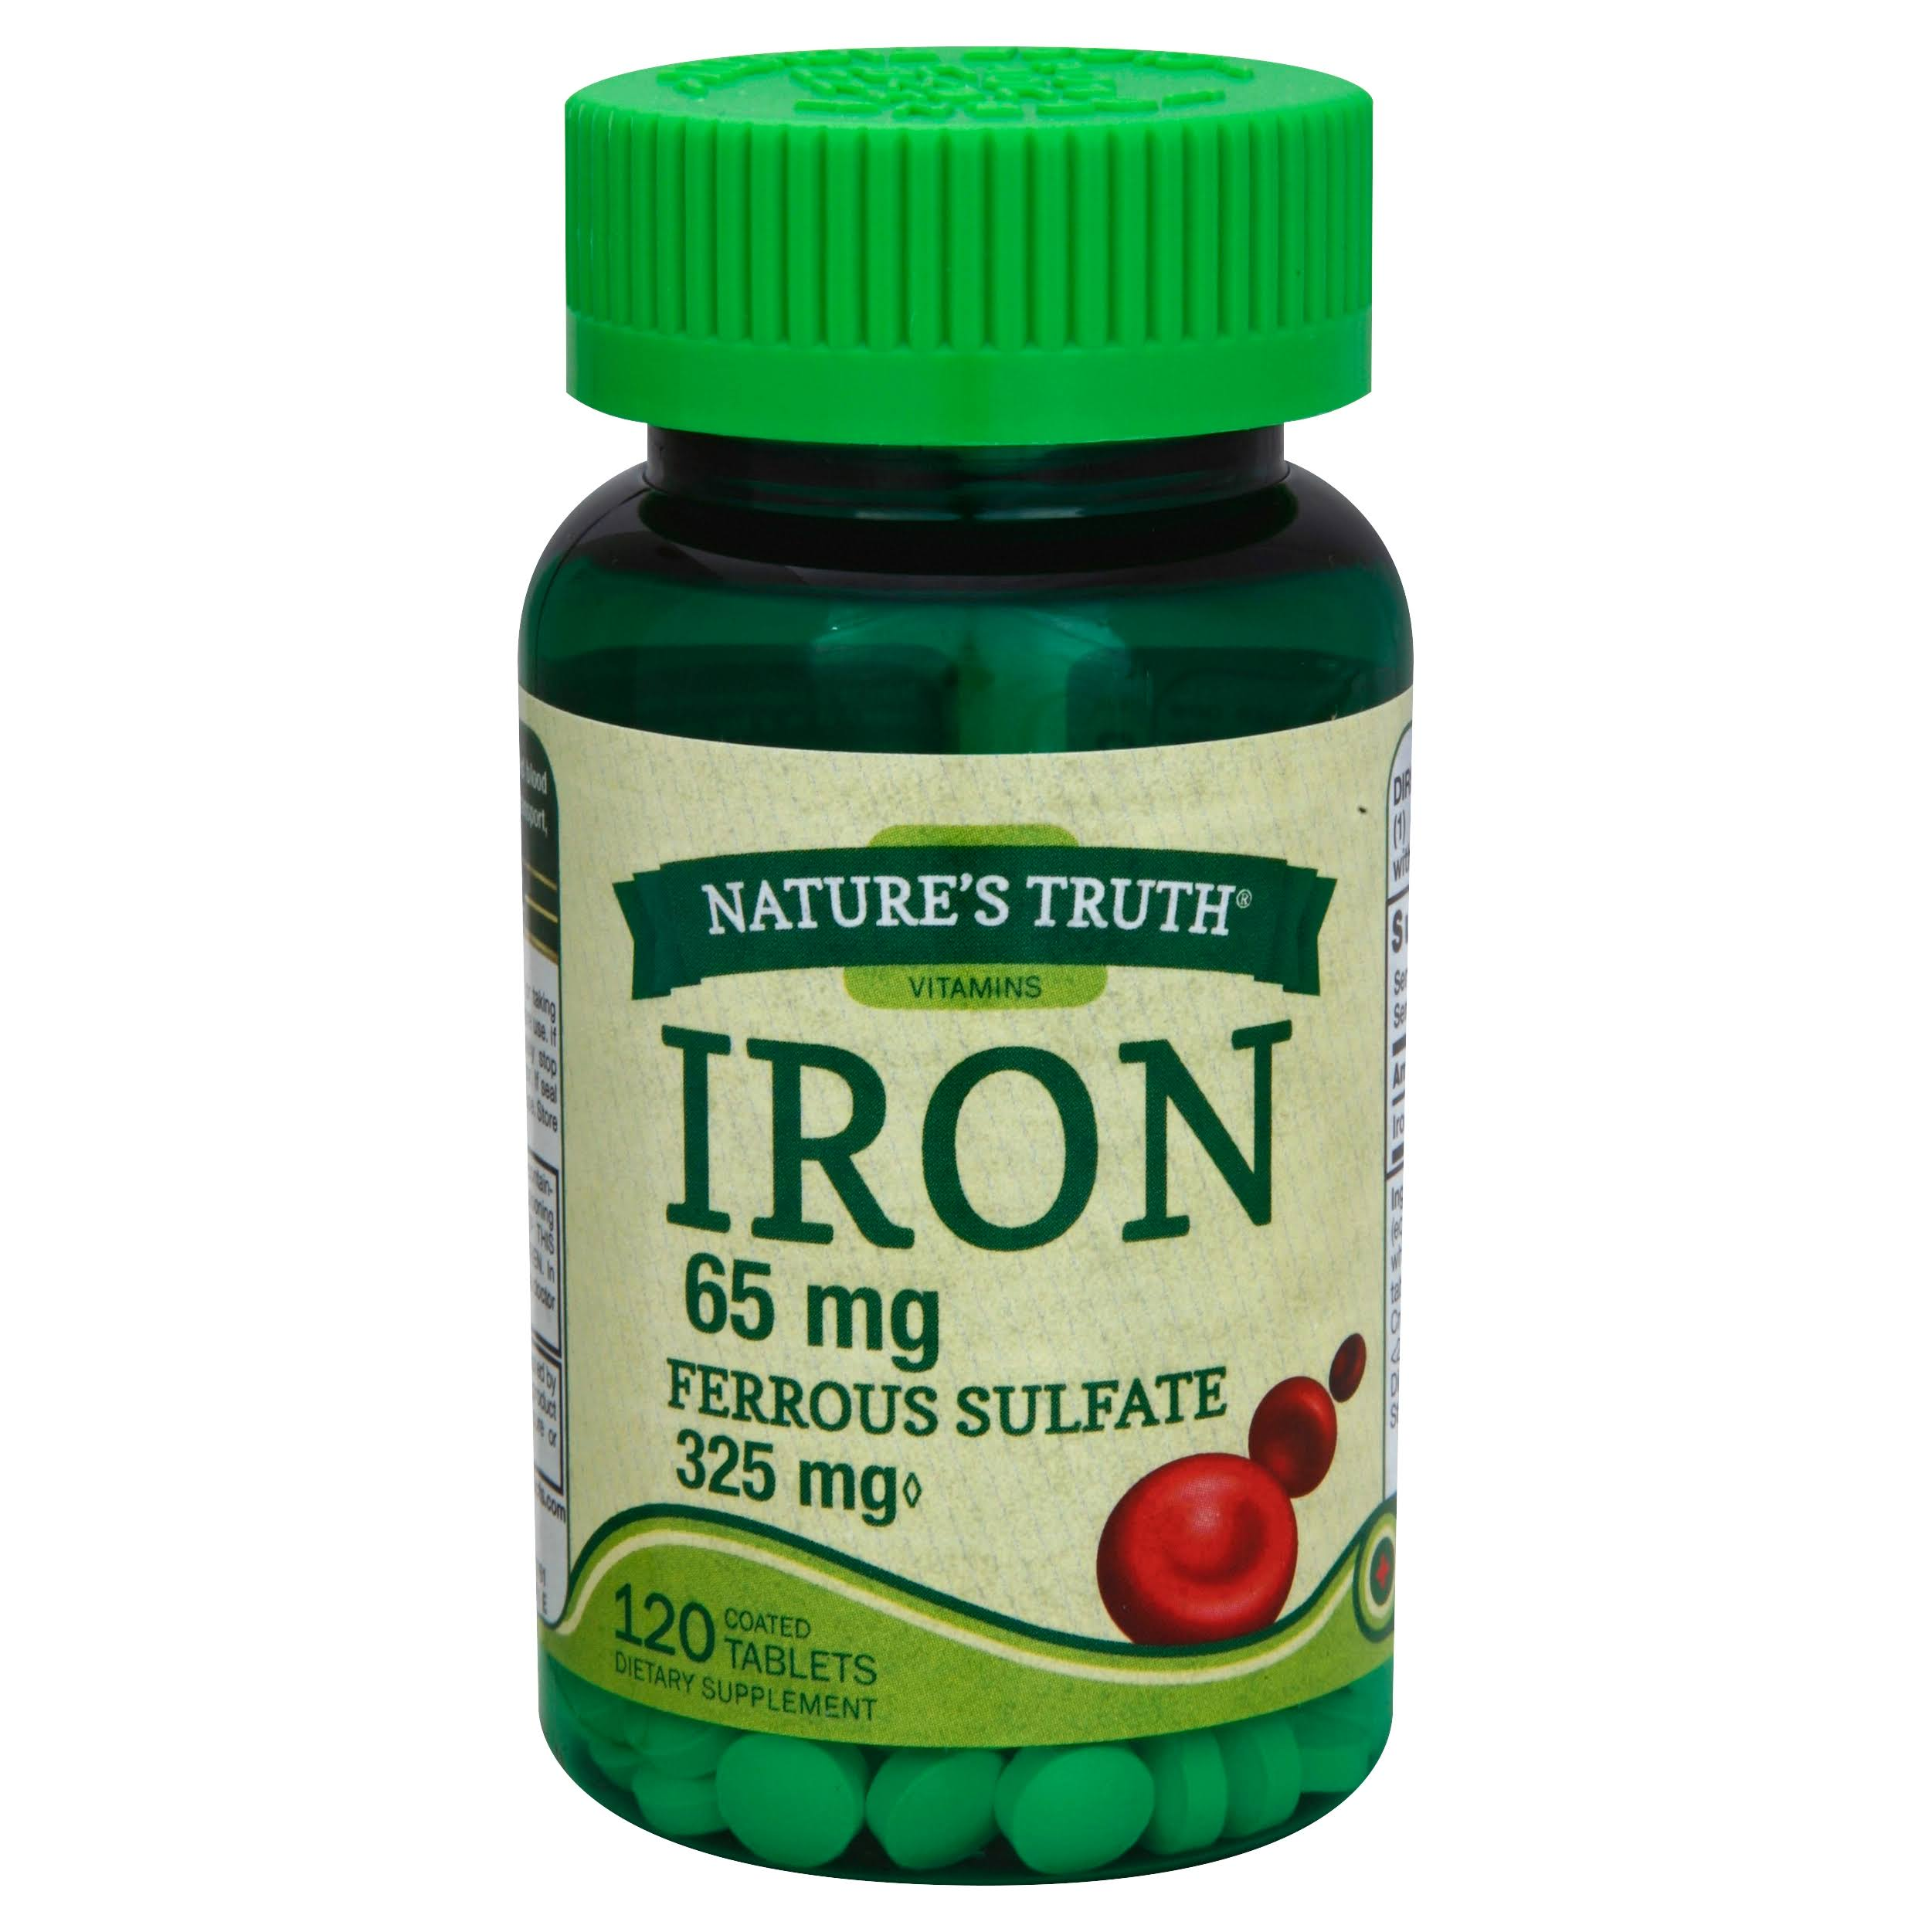 Nature's Truth Ferrous Sulfate Iron 65 mg Supplement - 120 Count